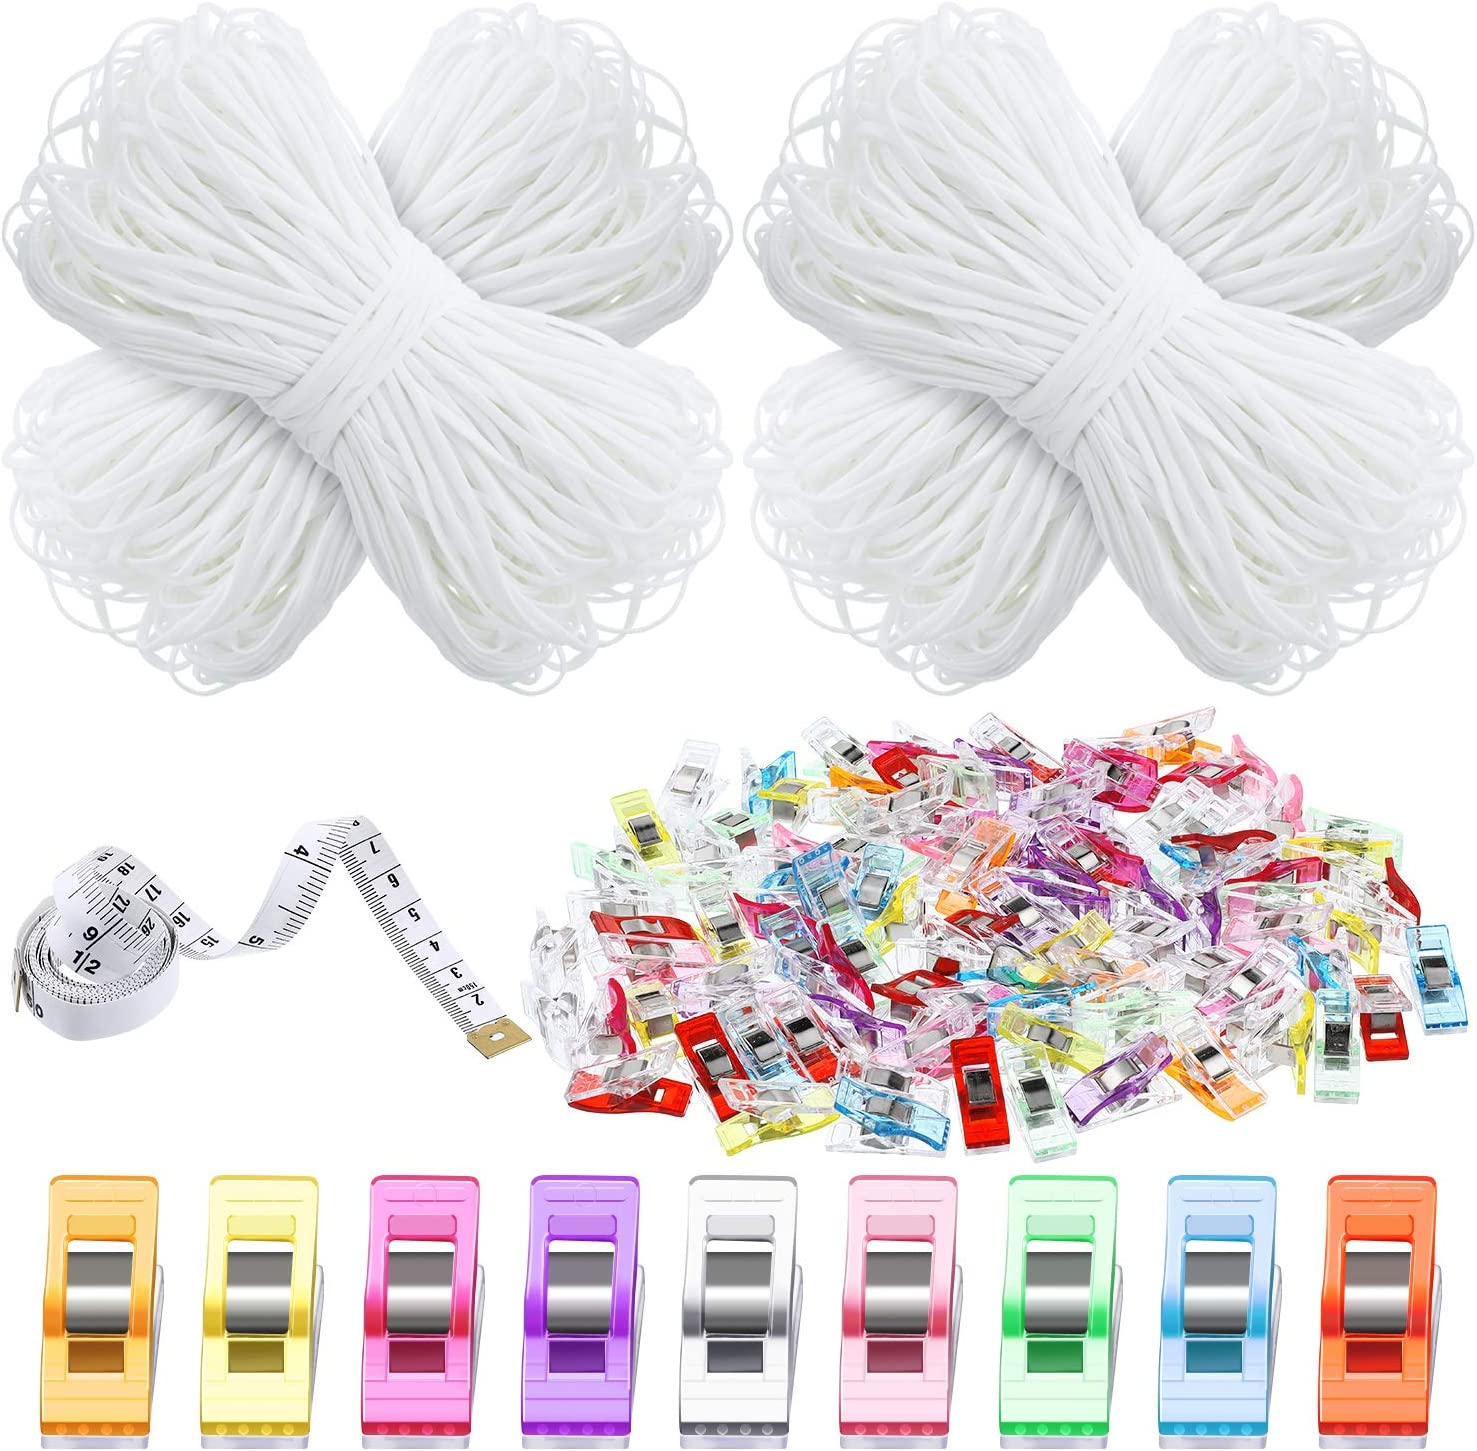 100 Pieces Multipurpose Sewing Clips Colorful Quilting Craft Clips 110 Yard 5 mm Width Flat Elastic Bands Sewing Stretch Strap Cord with 5 Feet Measuring Tape for DIY Craft Clothes Making Accessories